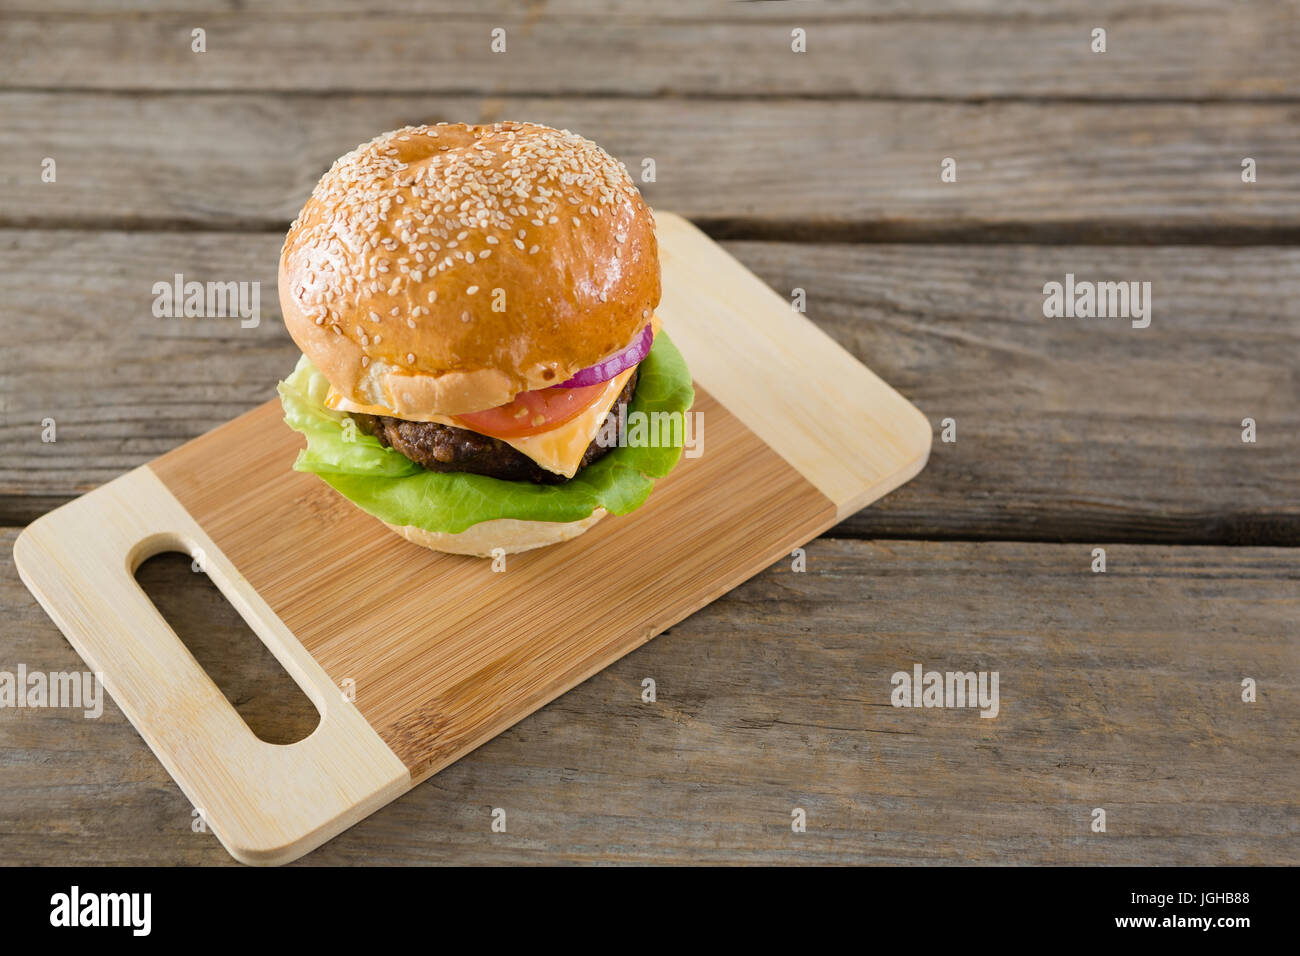 High angel view of hamburger with cheese on cutting board at wooden table - Stock Image